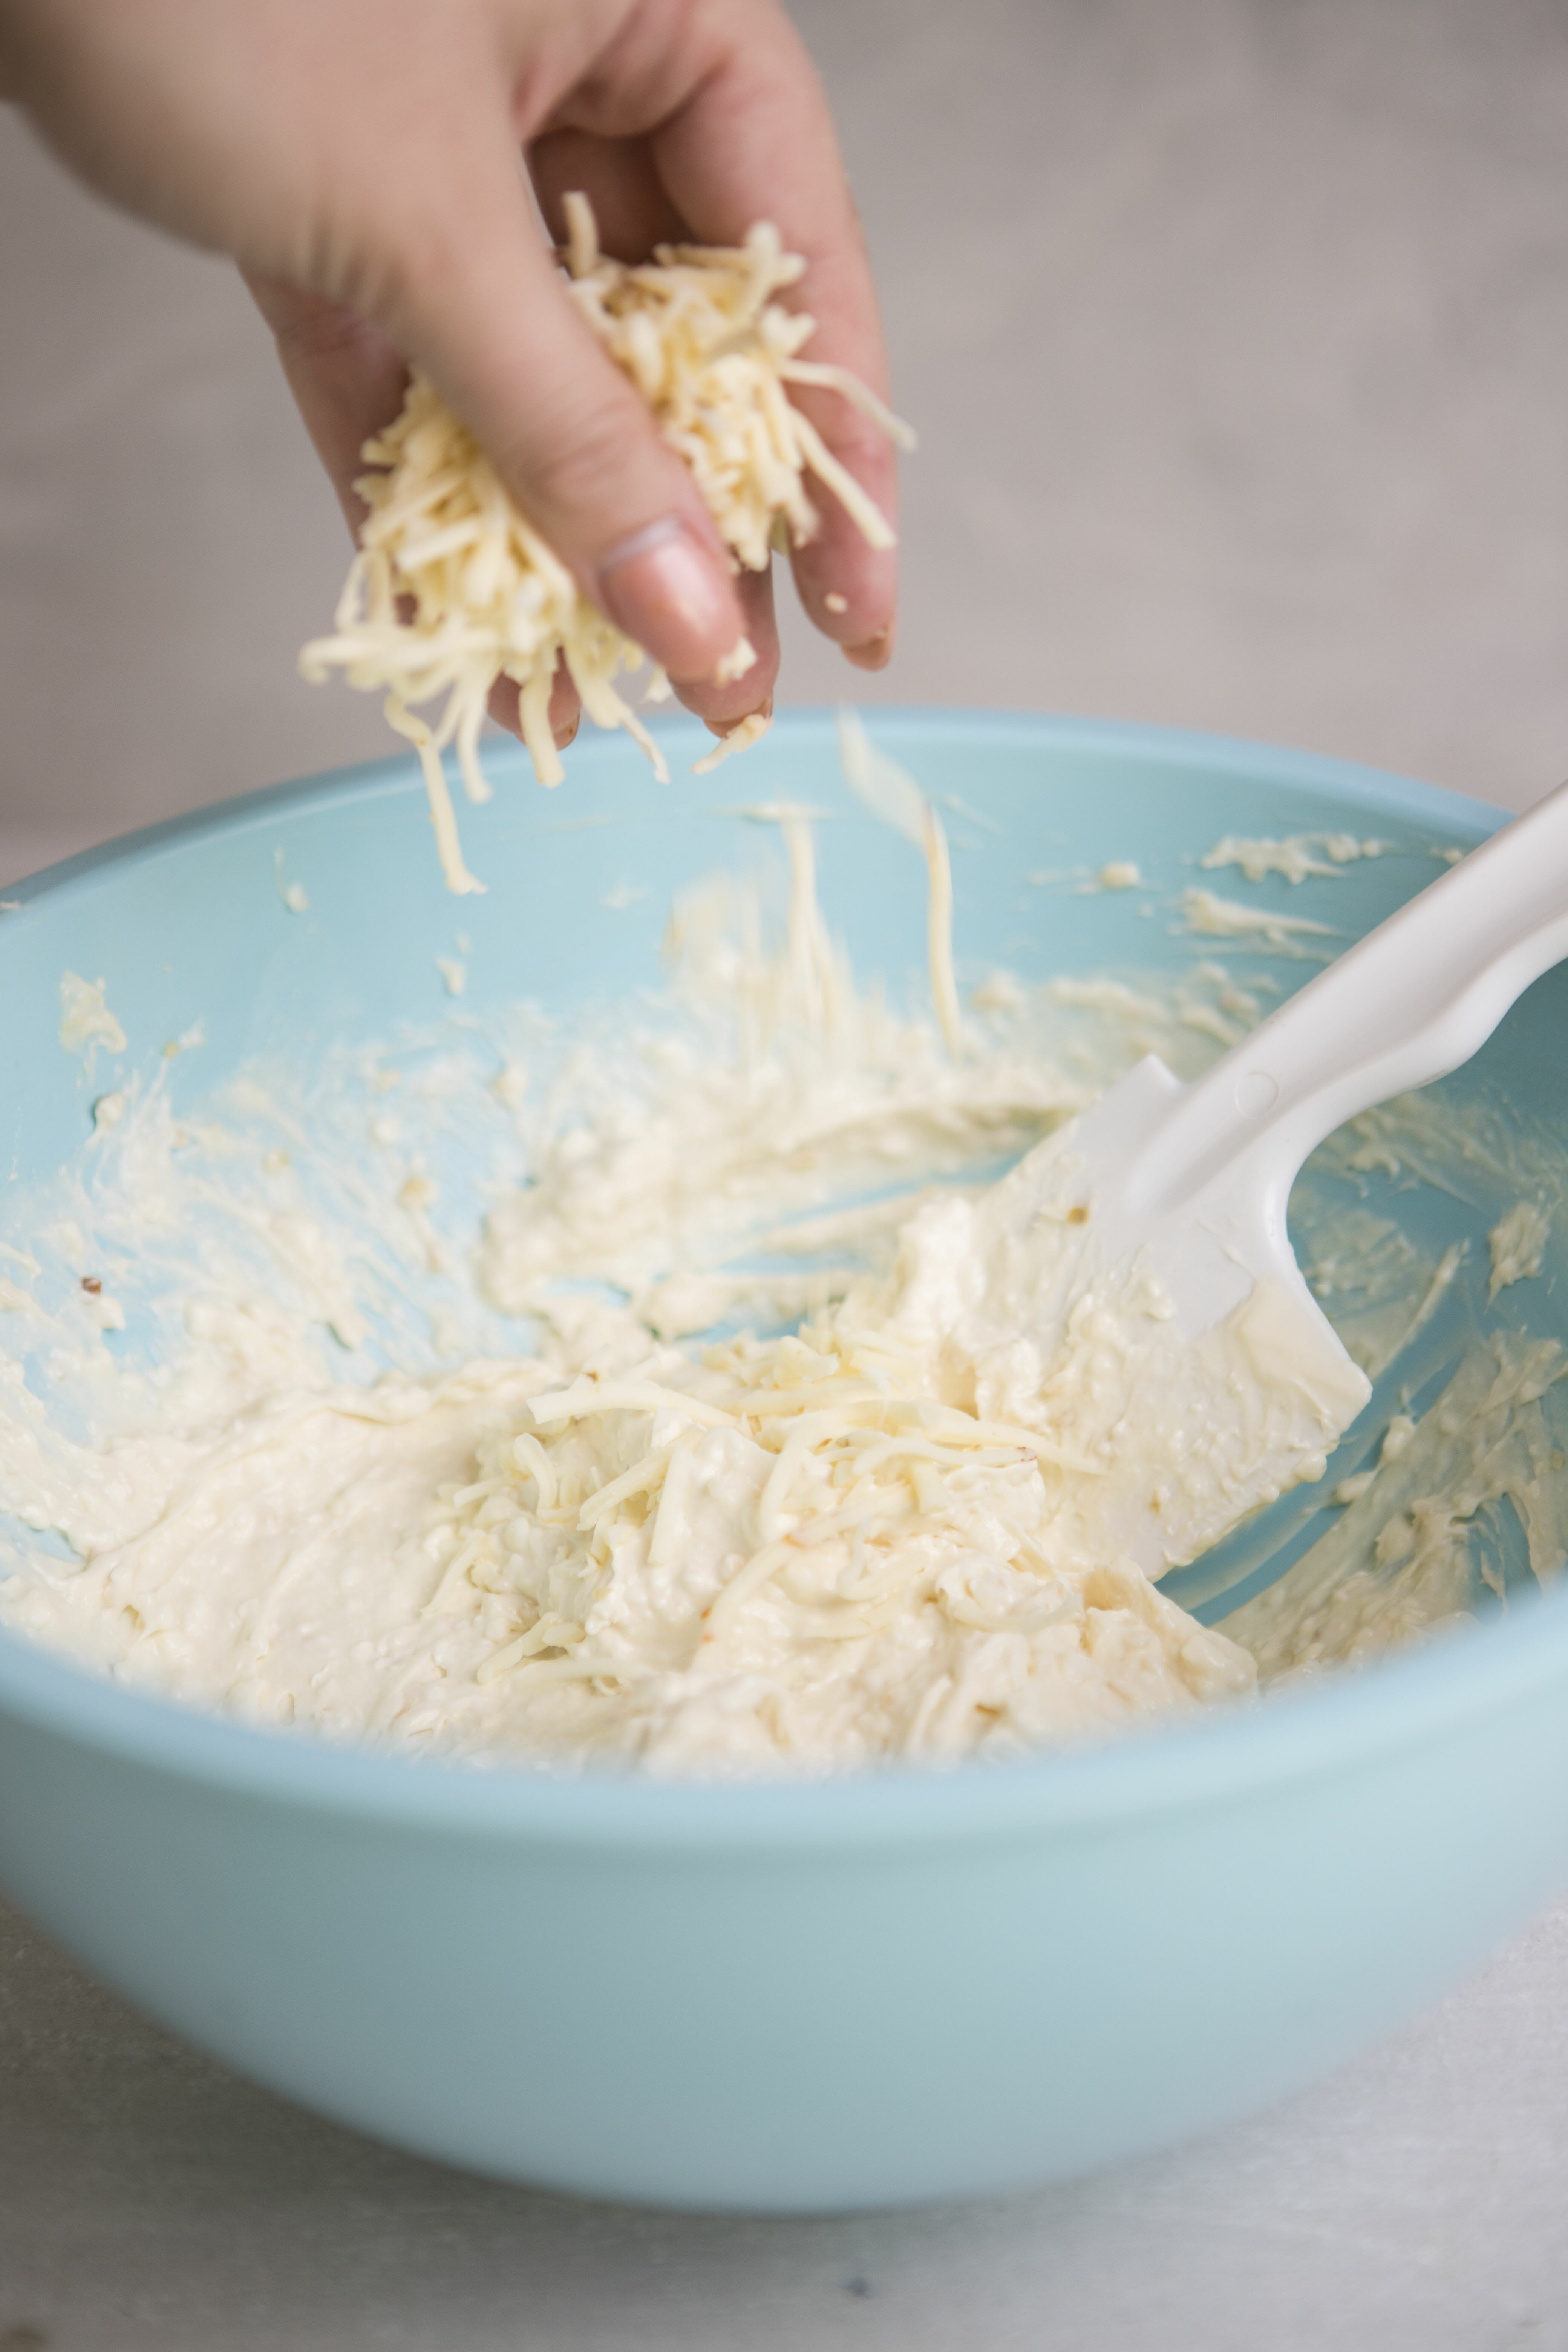 adding grated cheese